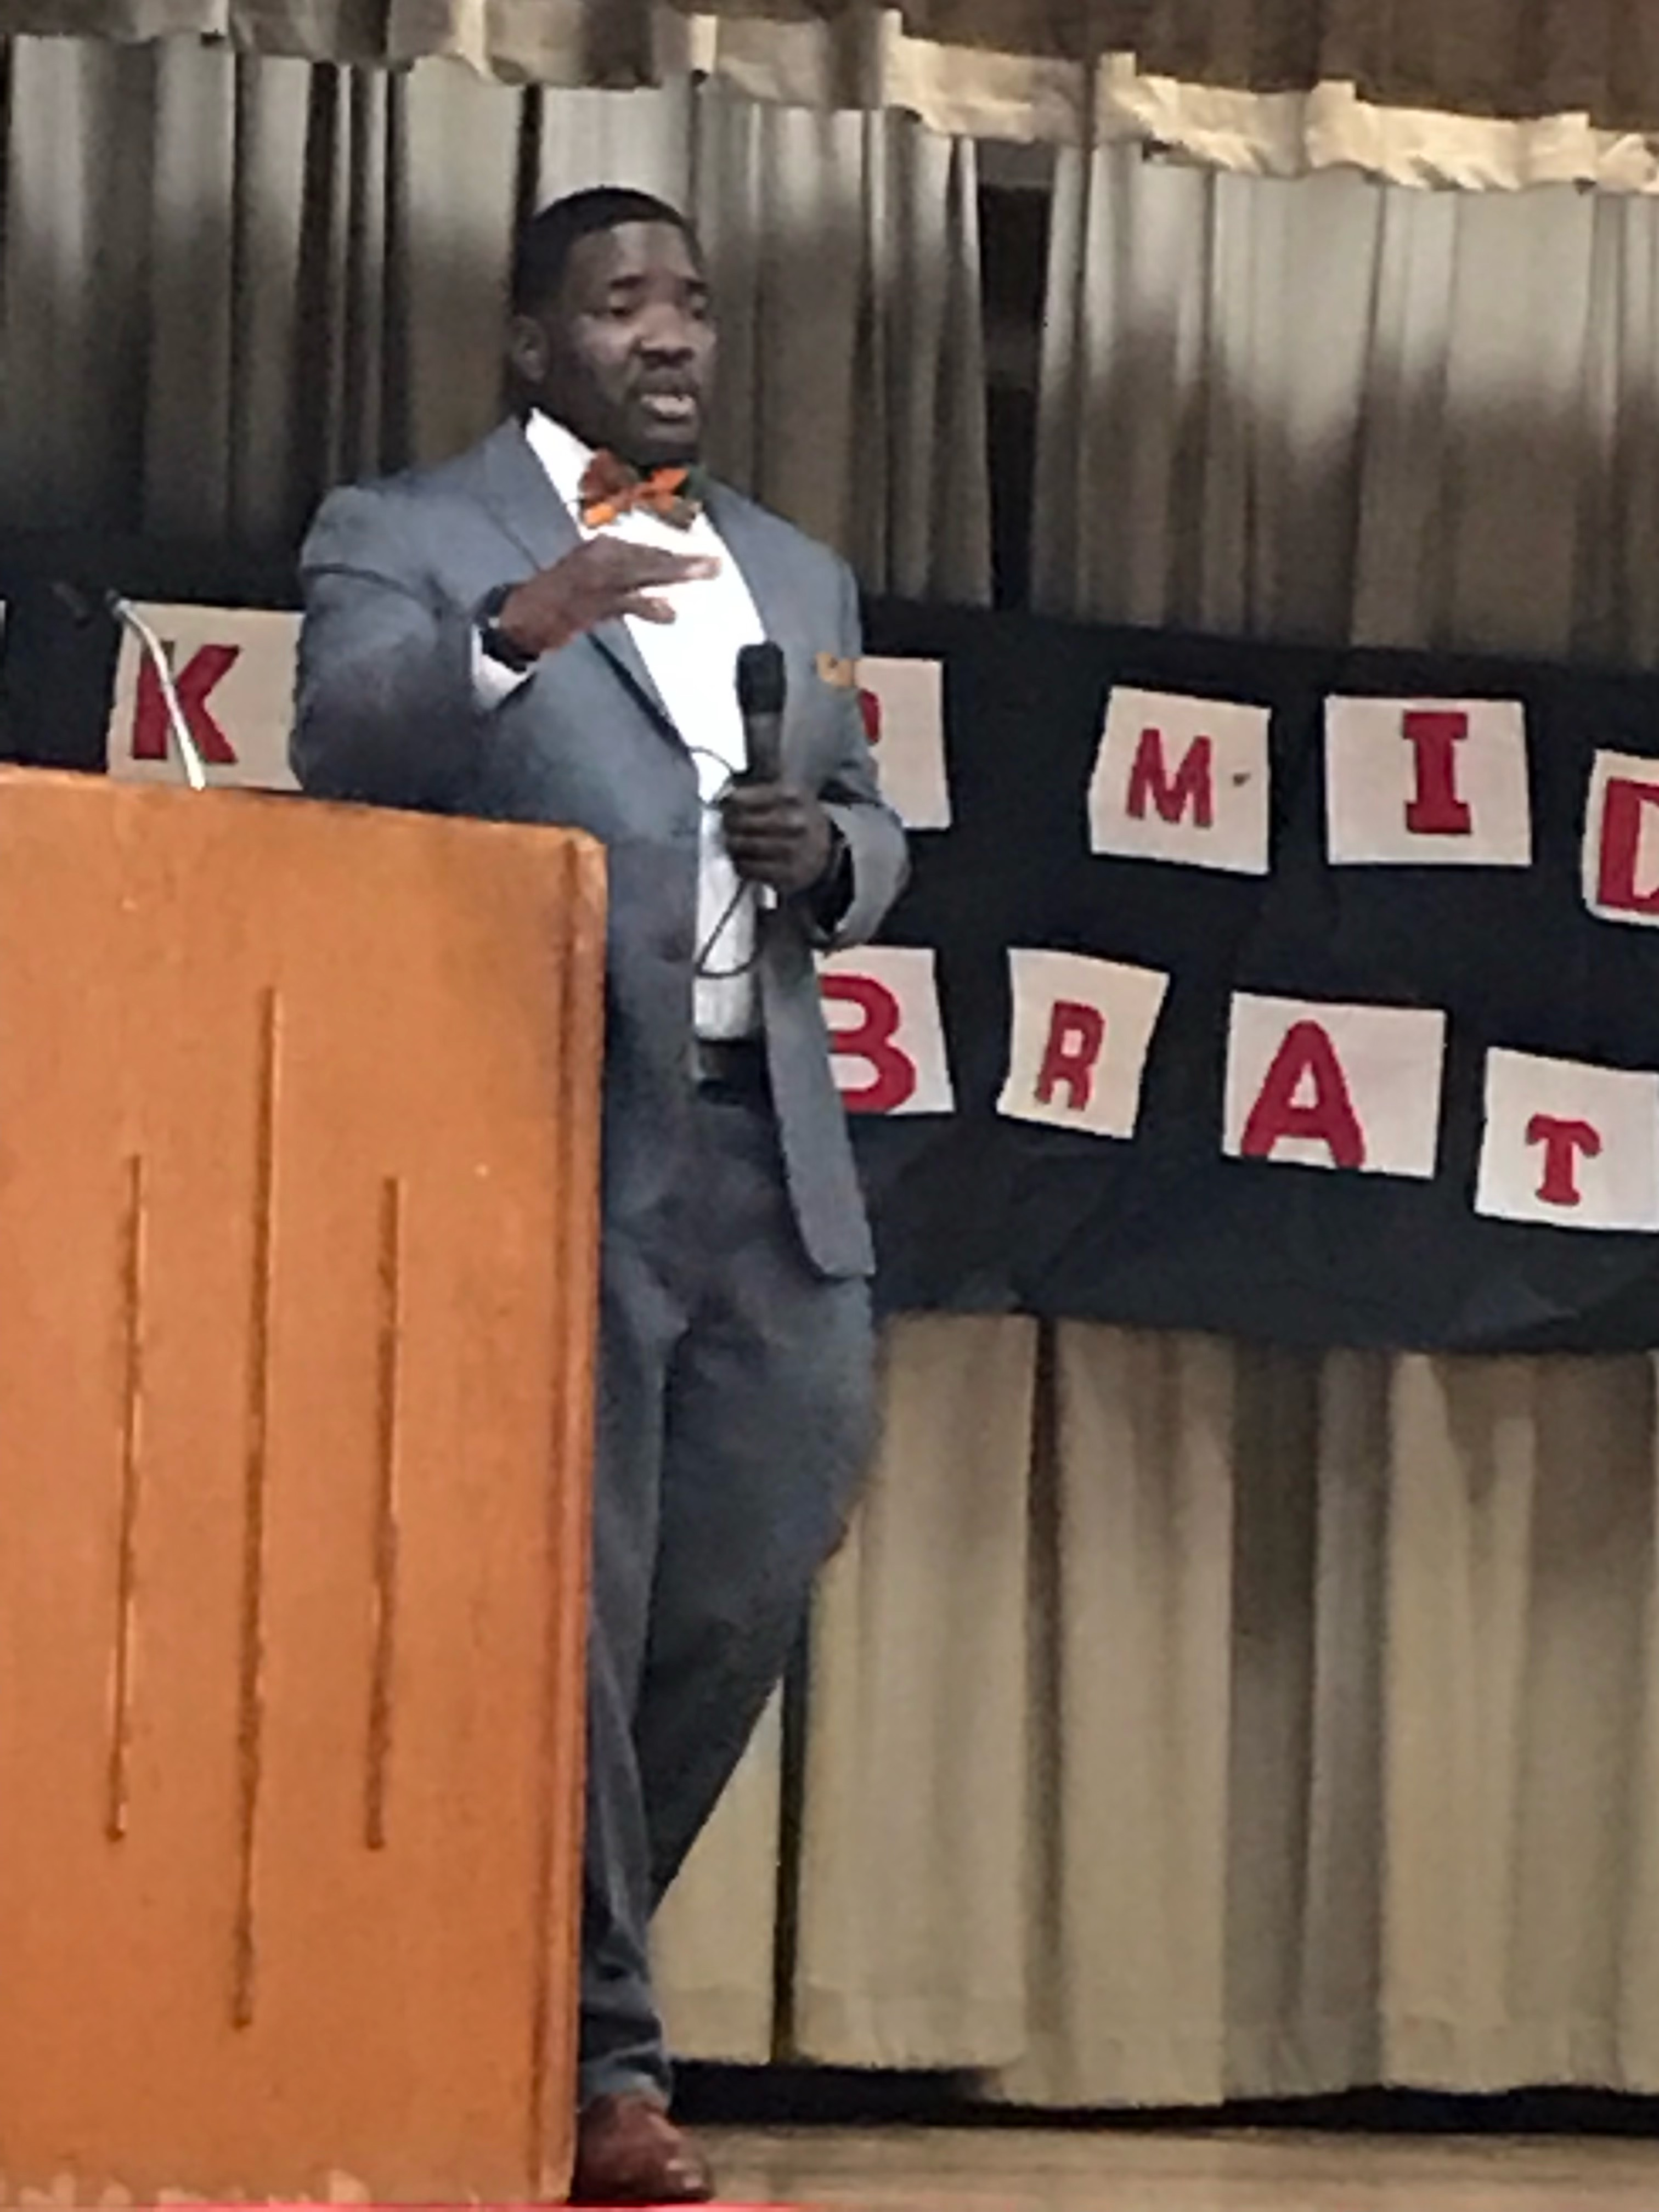 a photo from the 2019 Black History Program at Baker Middle School